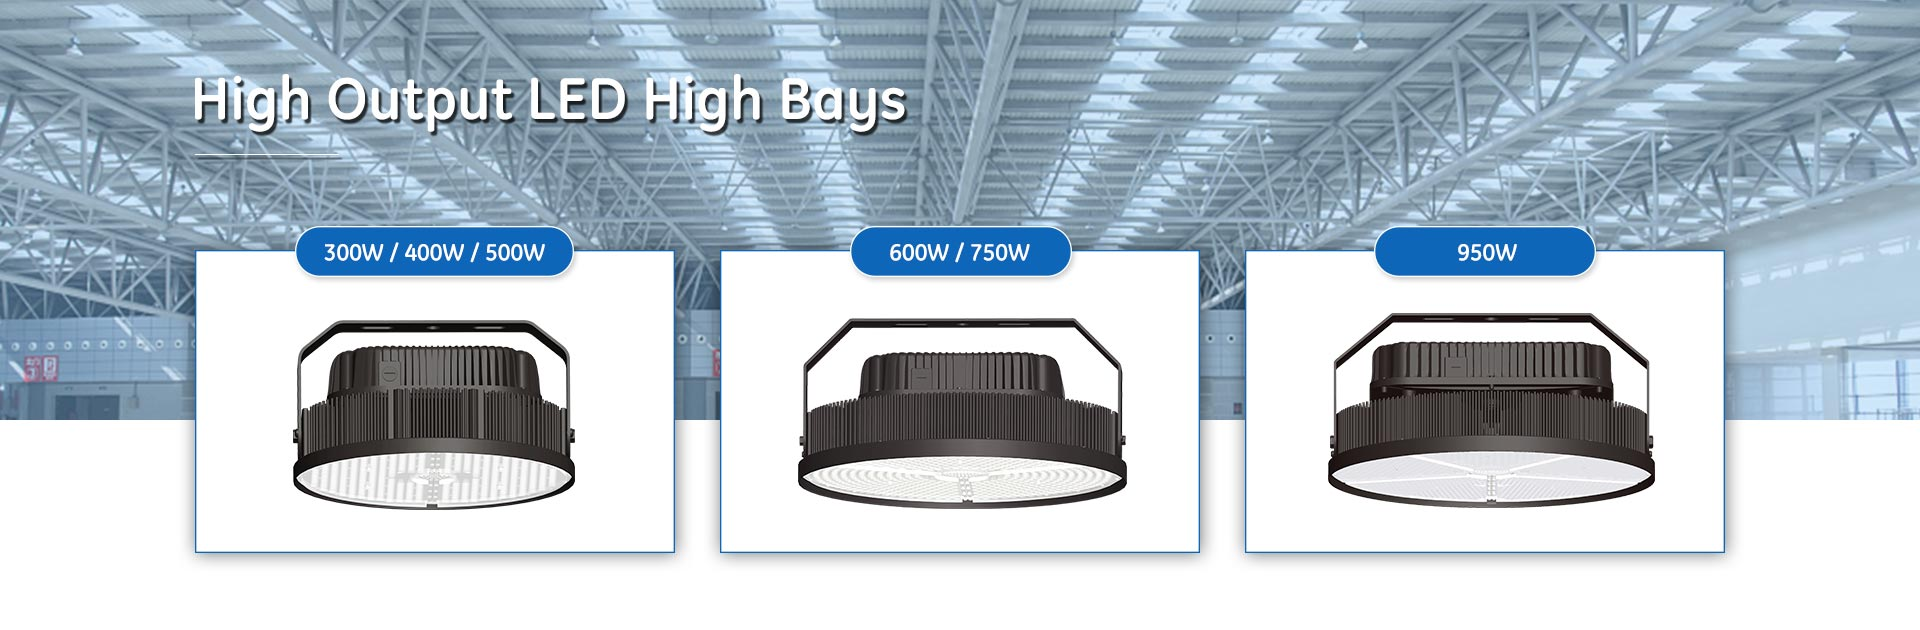 https://www.greeninovaled.com/products/fixtures/led-high-bays/led-high-power-high-bay/